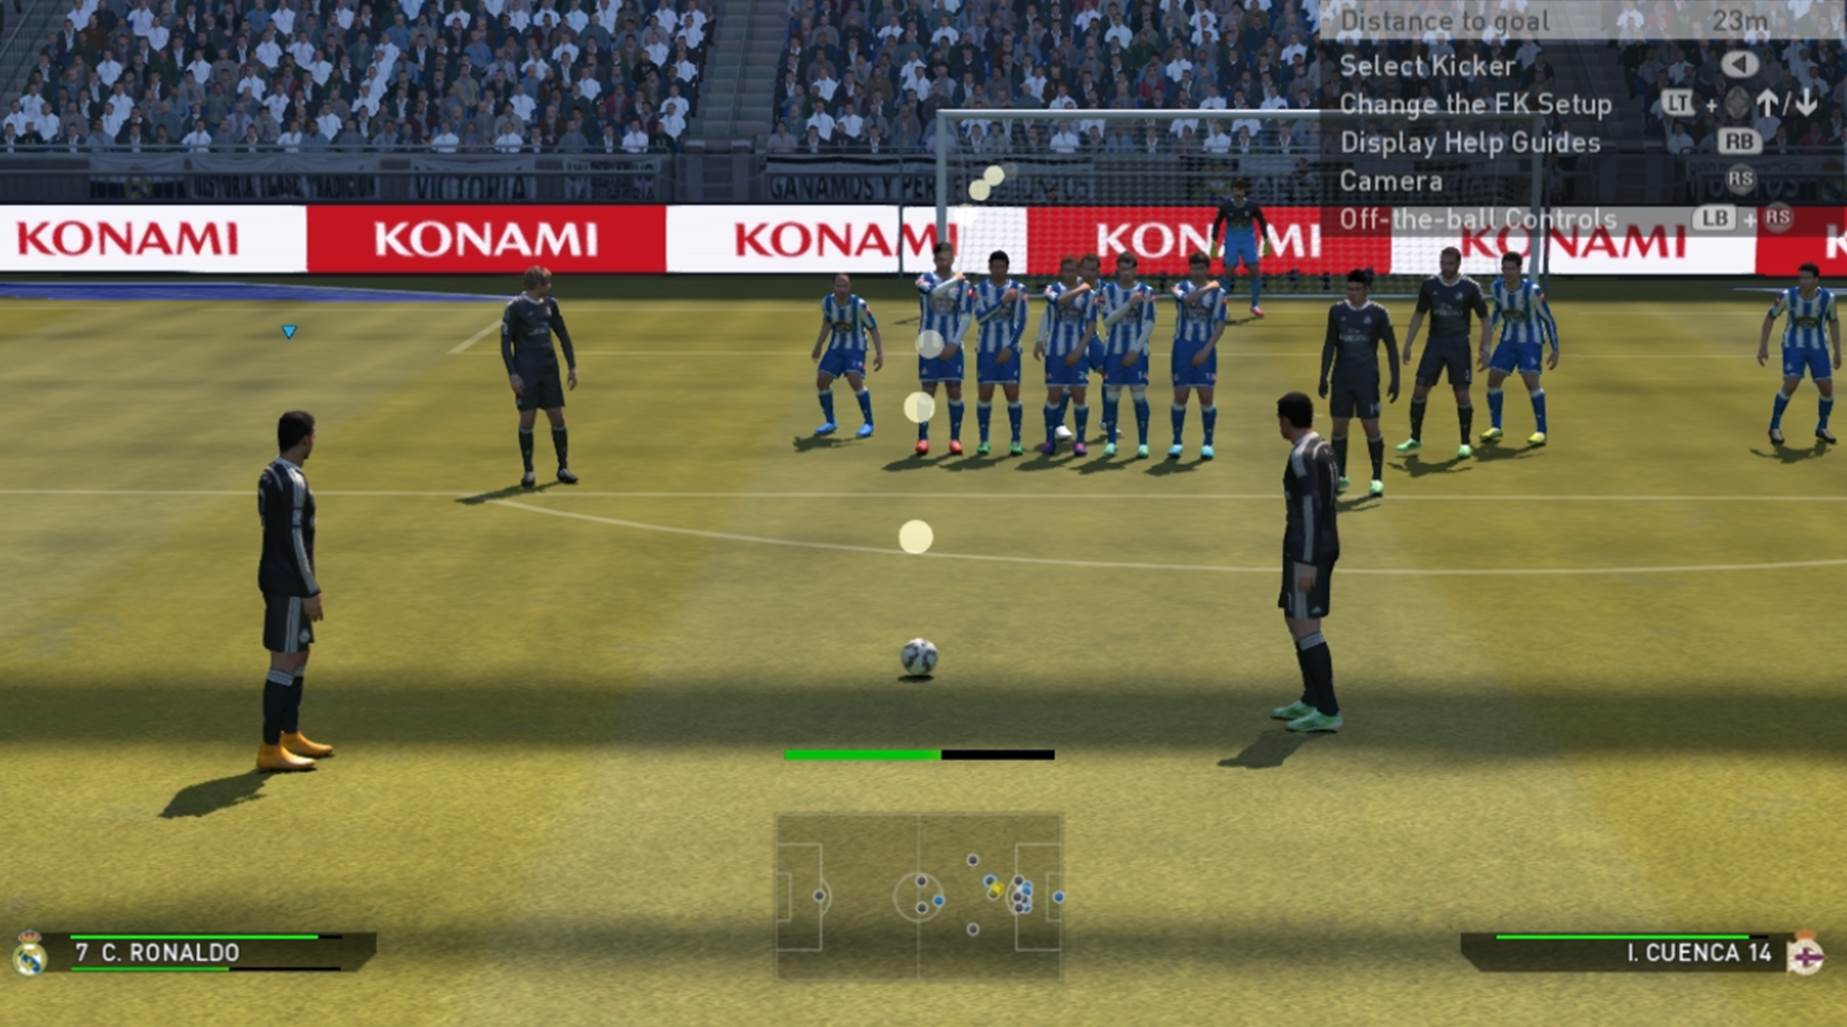 Using two free kick takers to confuse your opponent